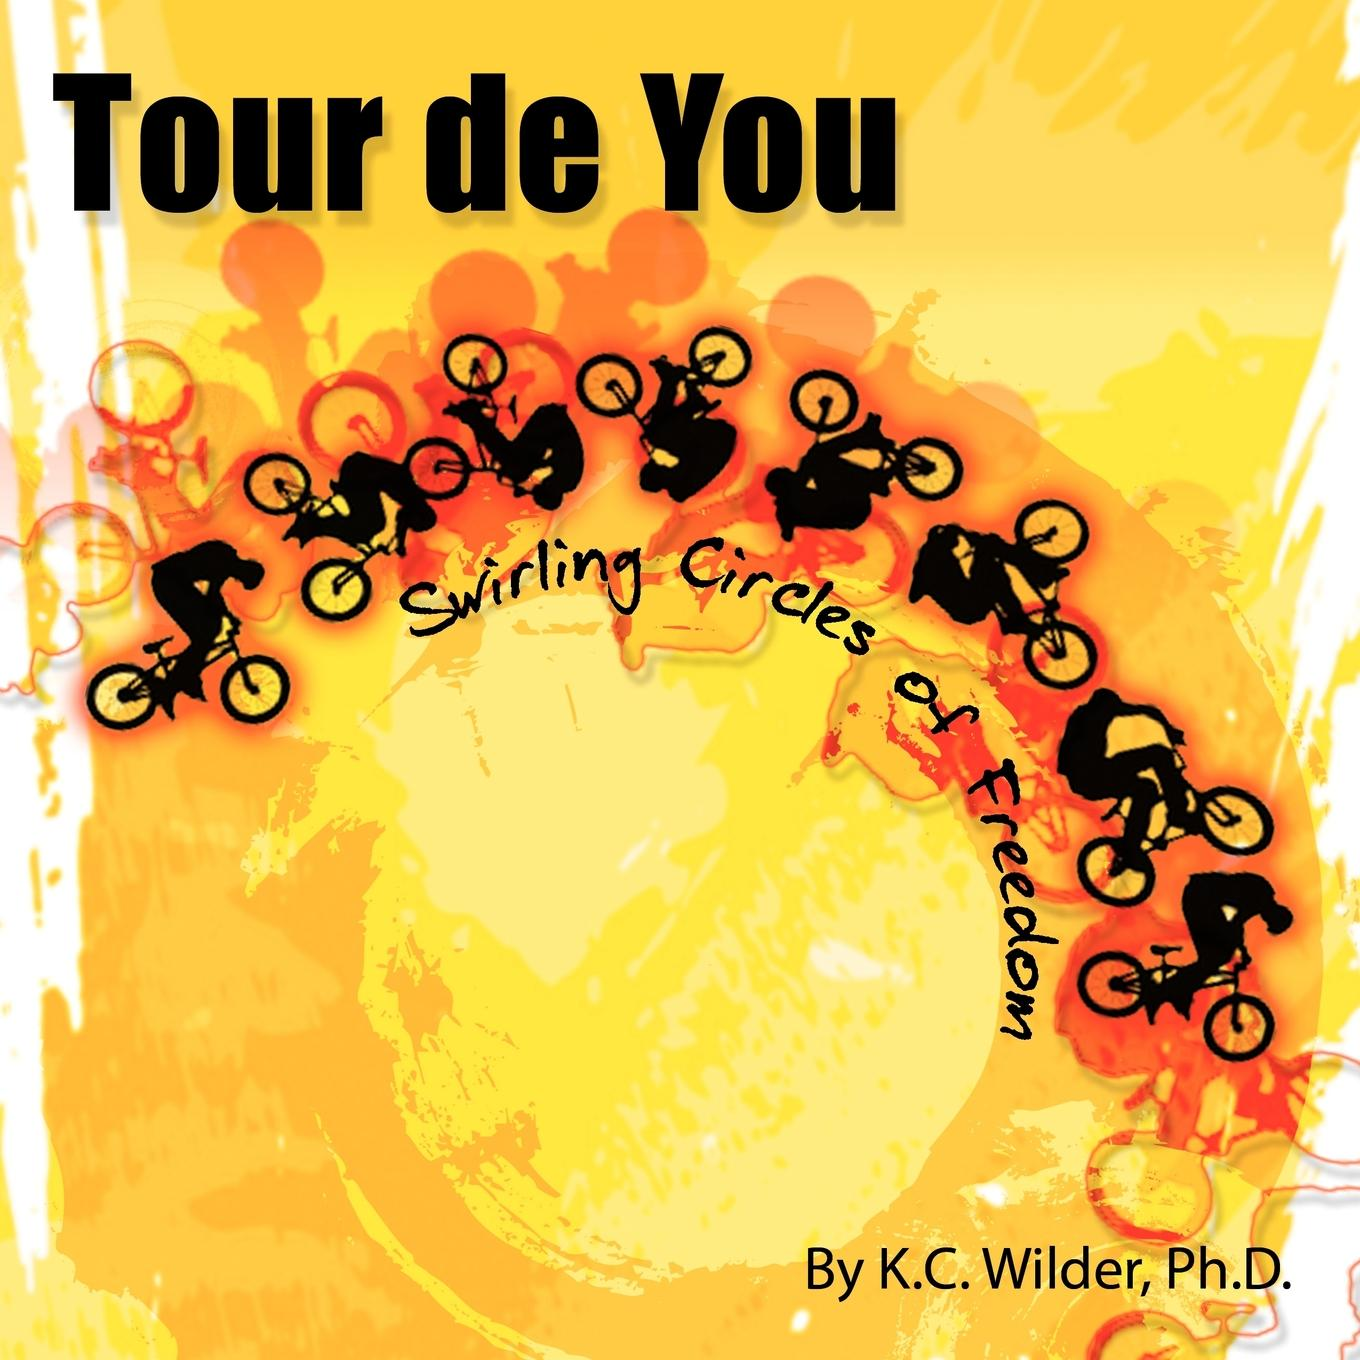 Tour de You : Swirling Circles of Freedom